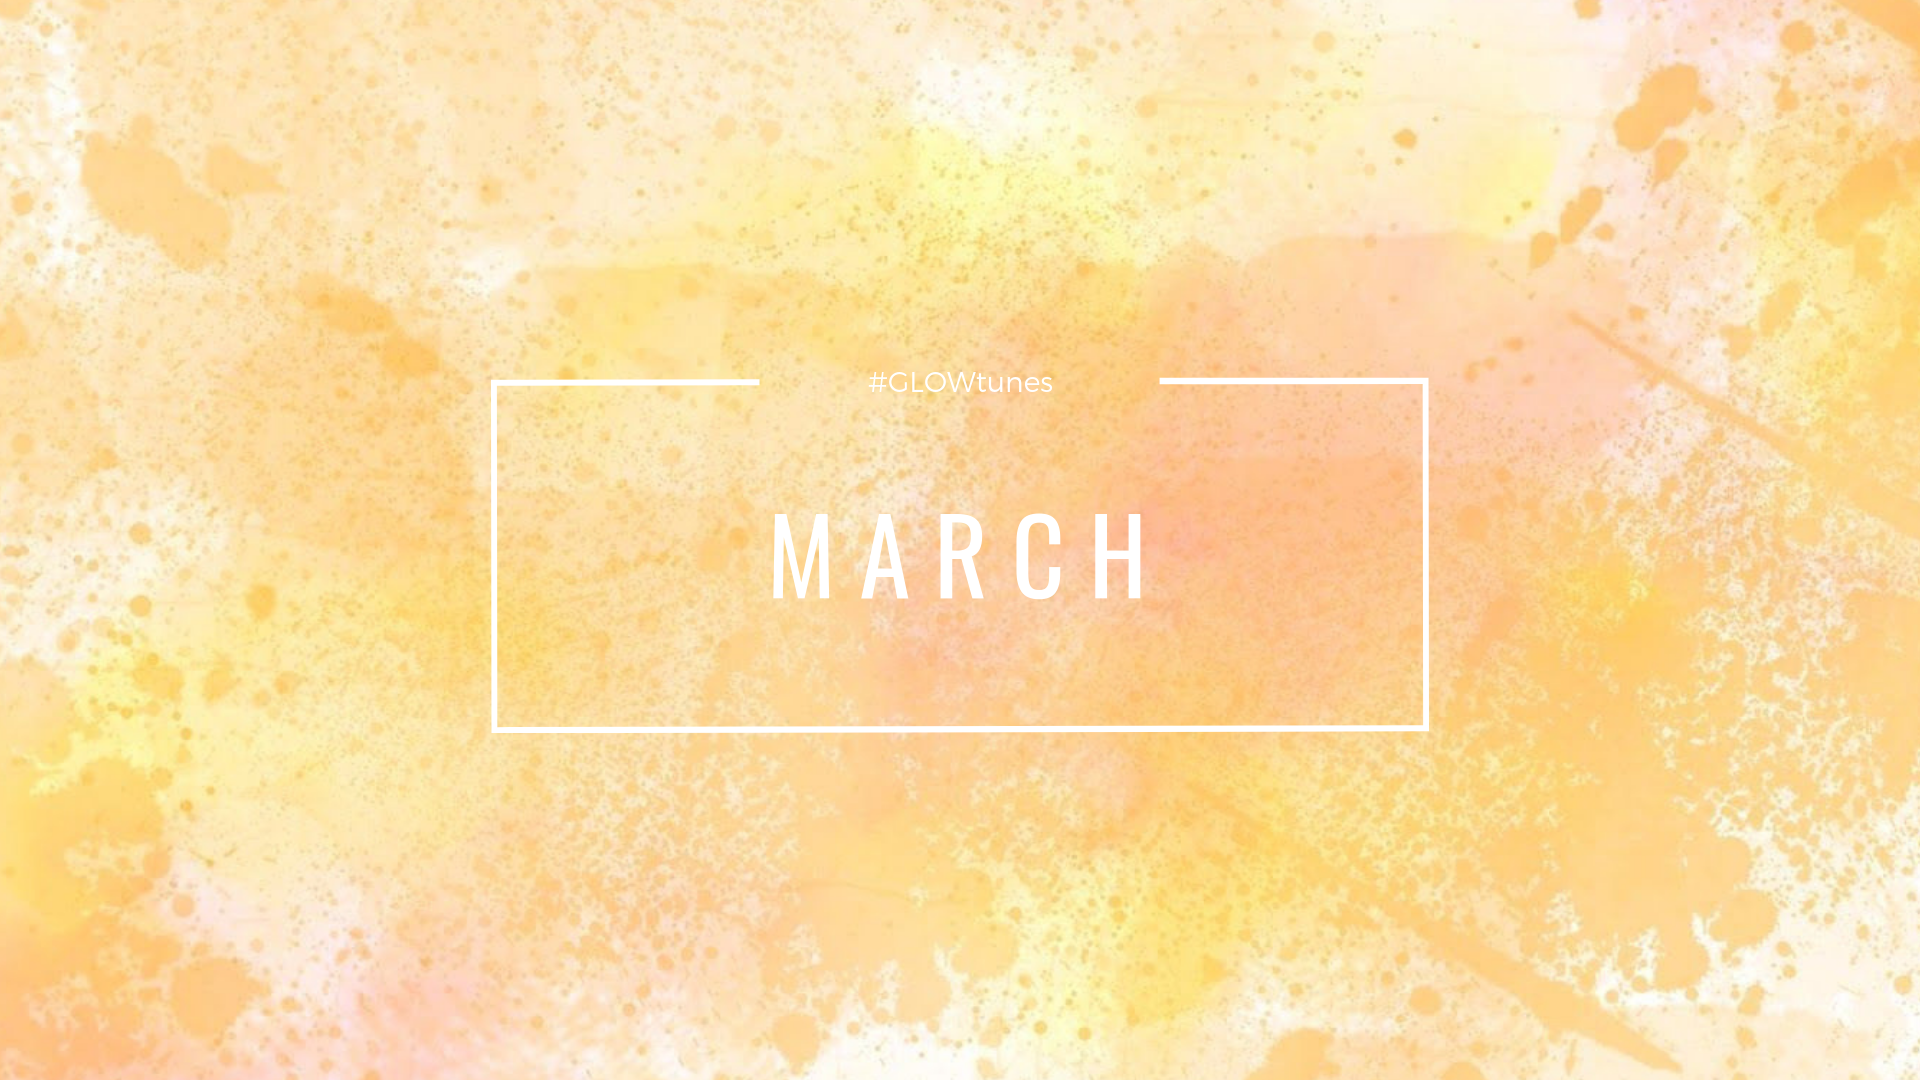 Here is the March 2019 #GLOWtunes playlist, for your listening pleasure. Straight from your glow girls. As music-obsessed chicks, we're excited to share with you a mix of tunes that we love. Some rap, chill, hip hop, electronic, and just good beats.  ENJOY xx  LISTEN HERE ::  https://open.spotify.com/user/howyouglow/playlist/7gsUmaA6osbhof2iAGtEuN?si=OLBi5T7pQc6aVX6hzYdMJg